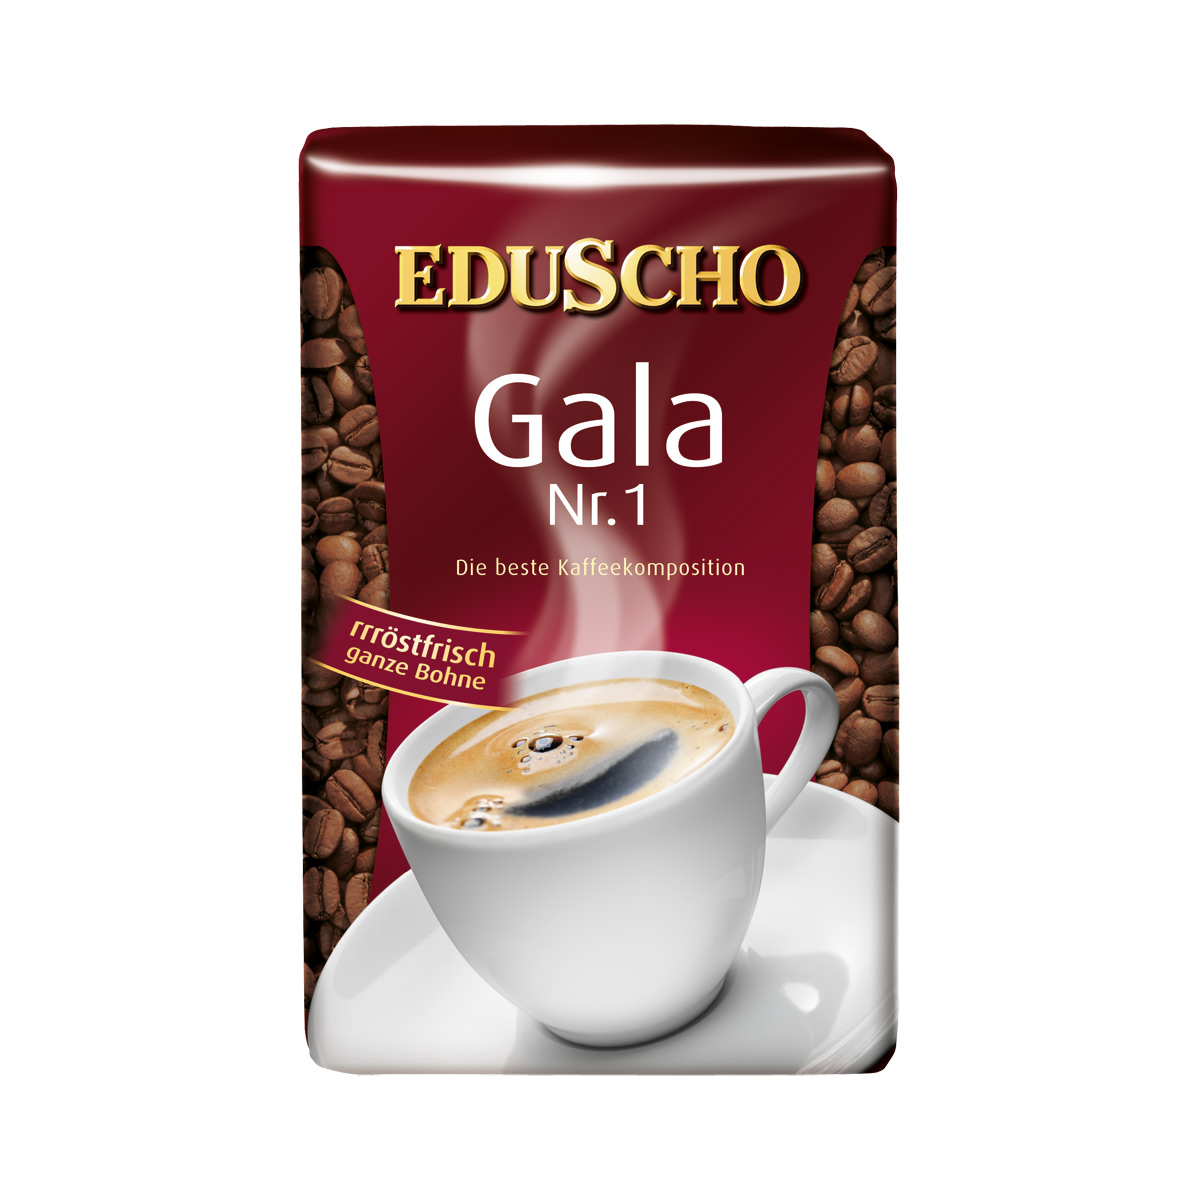 eduscho kaffee gala nr 1 im unimarkt online shop bestellen. Black Bedroom Furniture Sets. Home Design Ideas